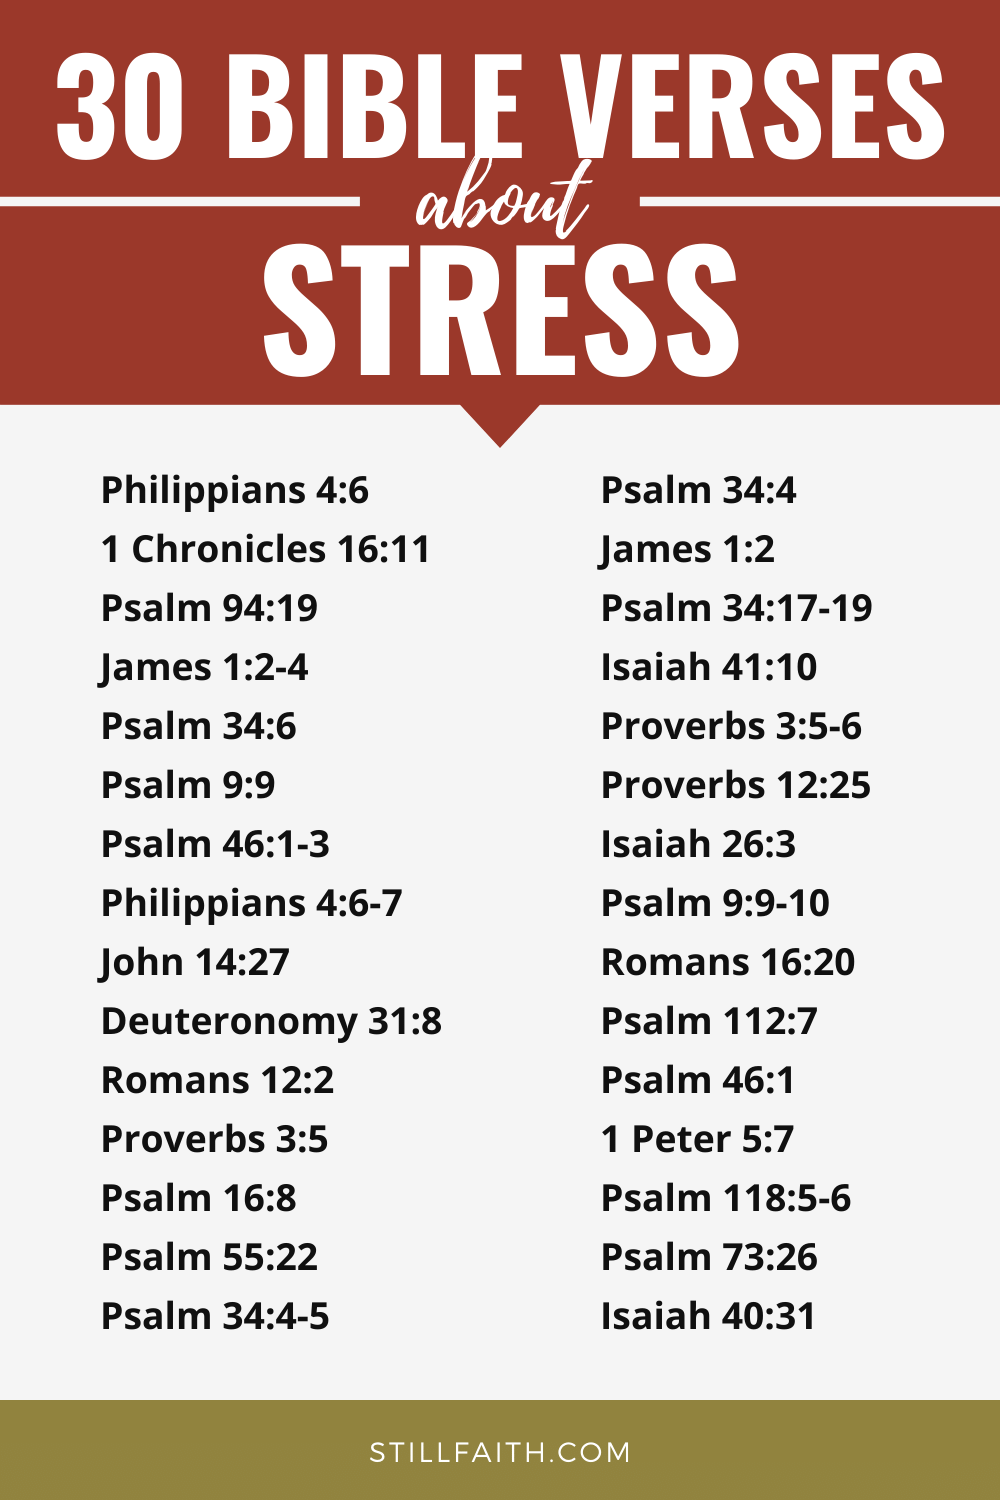 137 Bible Verses about Stress